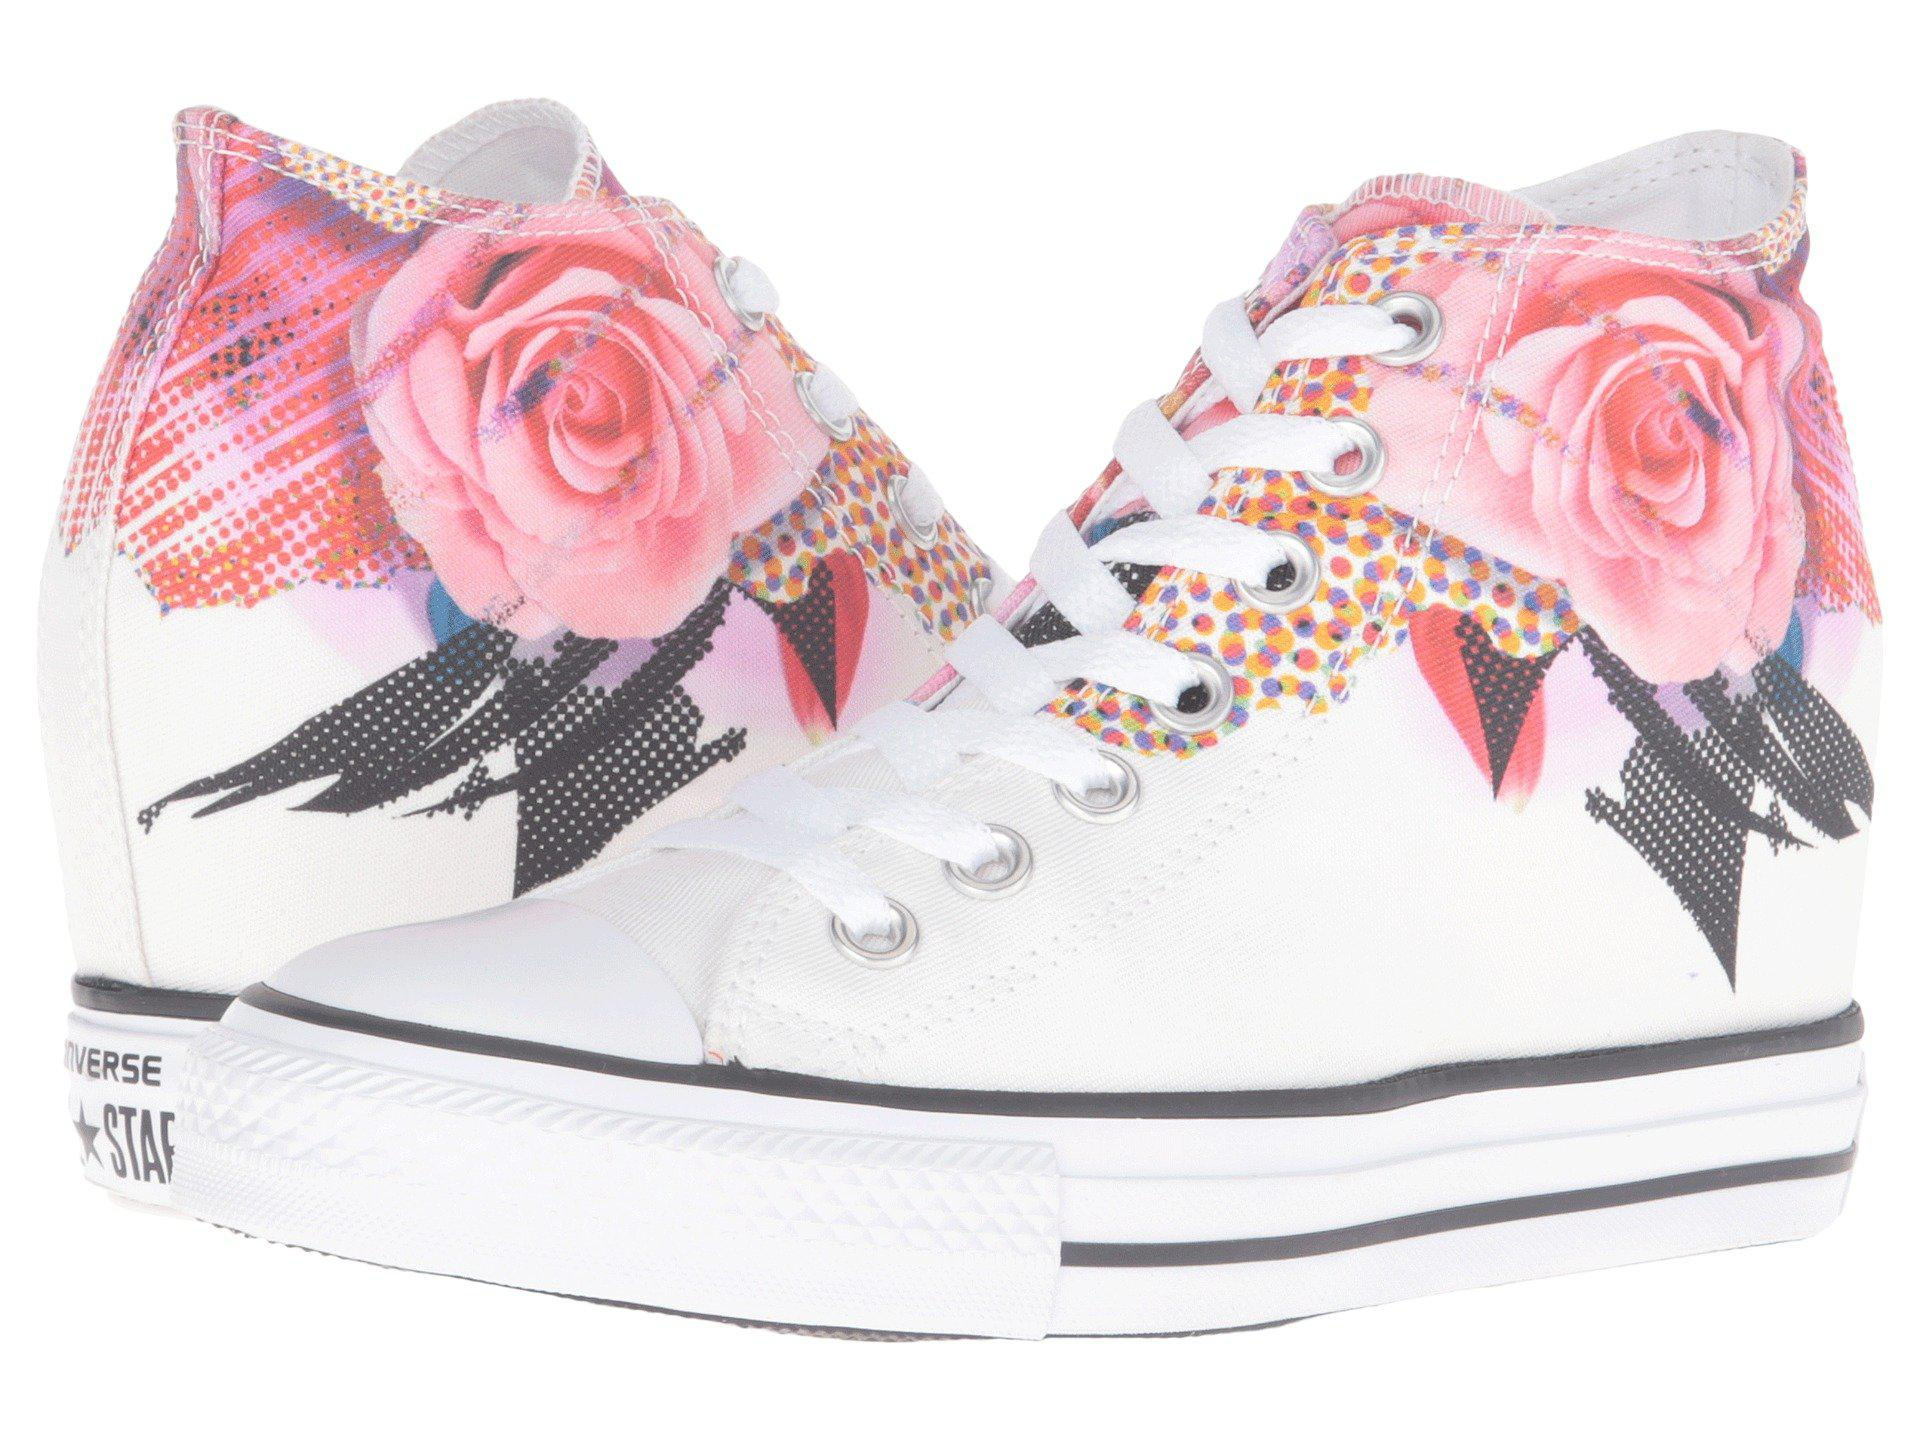 Lyst - Converse Chuck Taylor® All Star® Lux Digital Floral Print Mid ... d987e1ccb